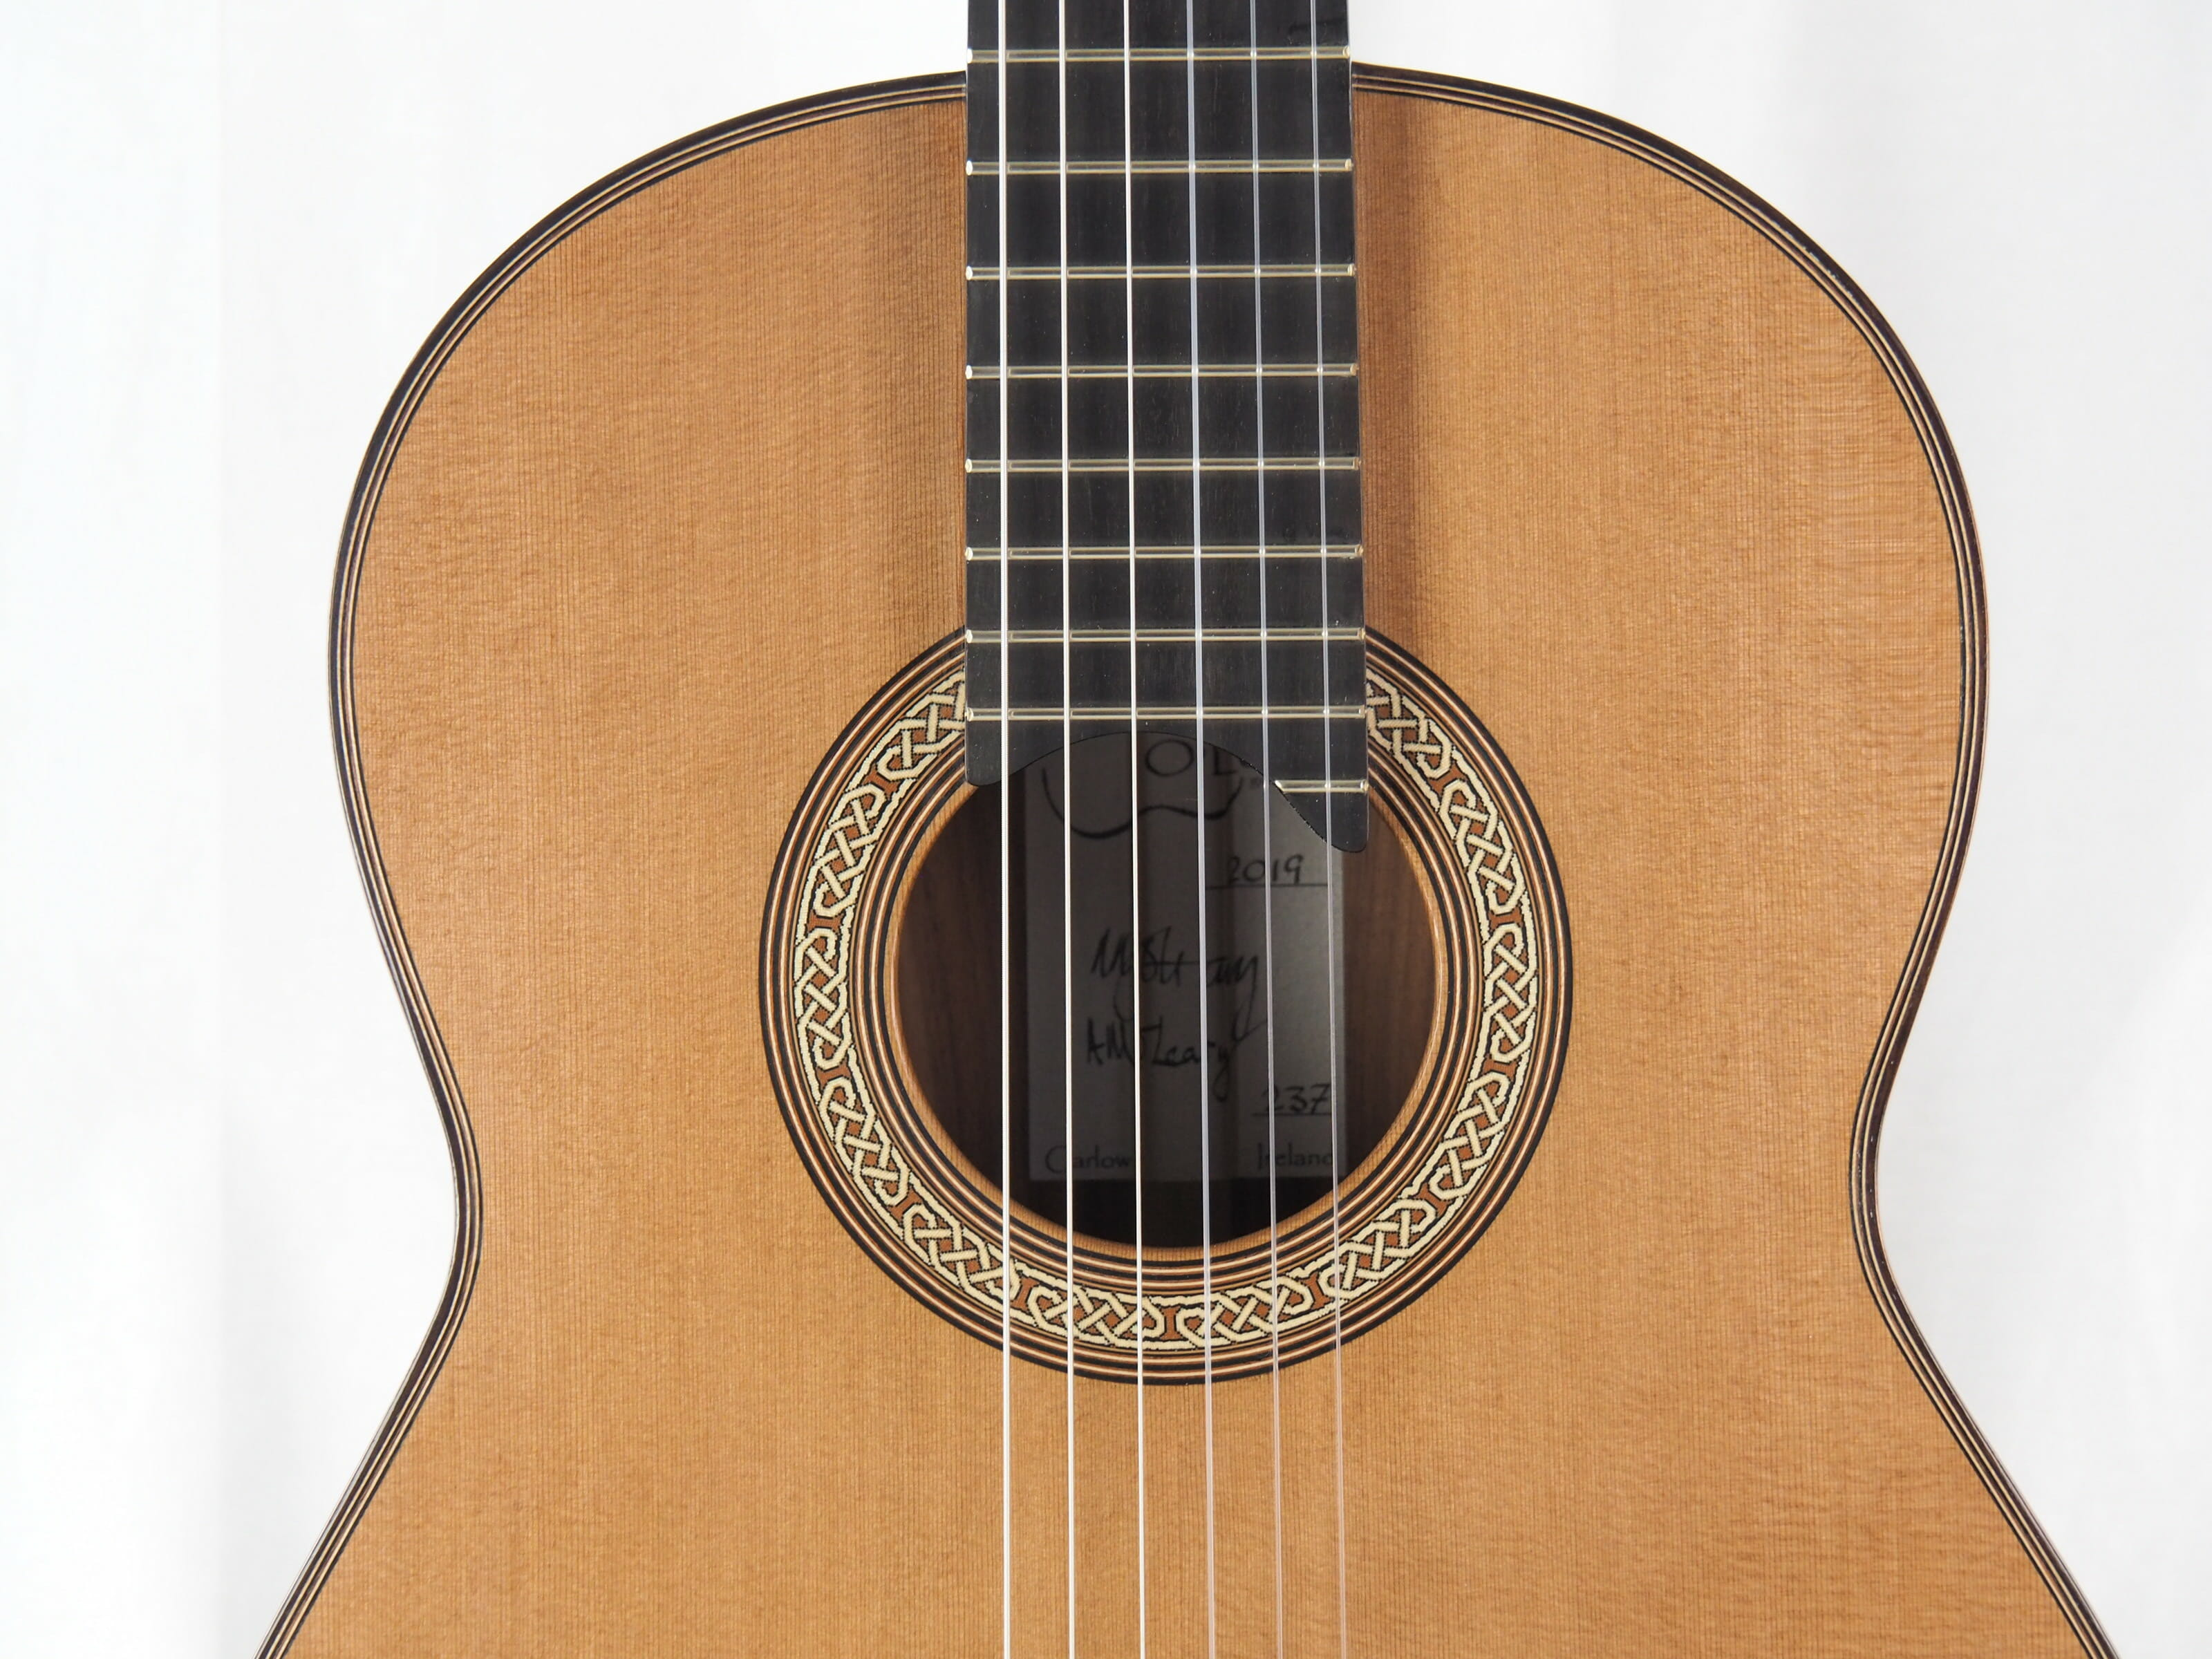 Michael O'Leary luthier guitare classique 19OLE237-11